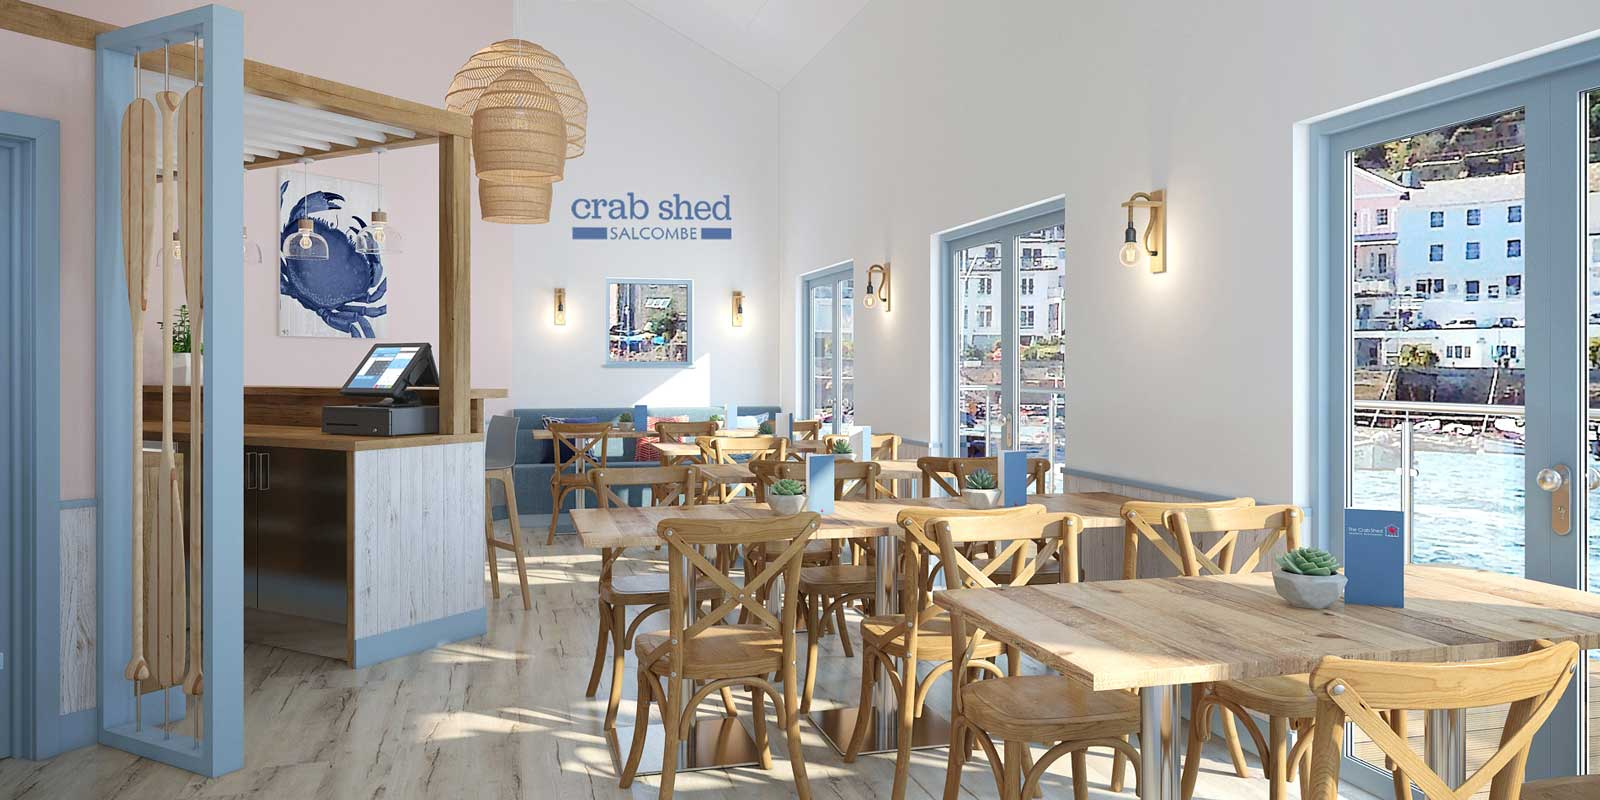 Visualisation of the refurbished Crab Shed Salcombe seafood restaurant